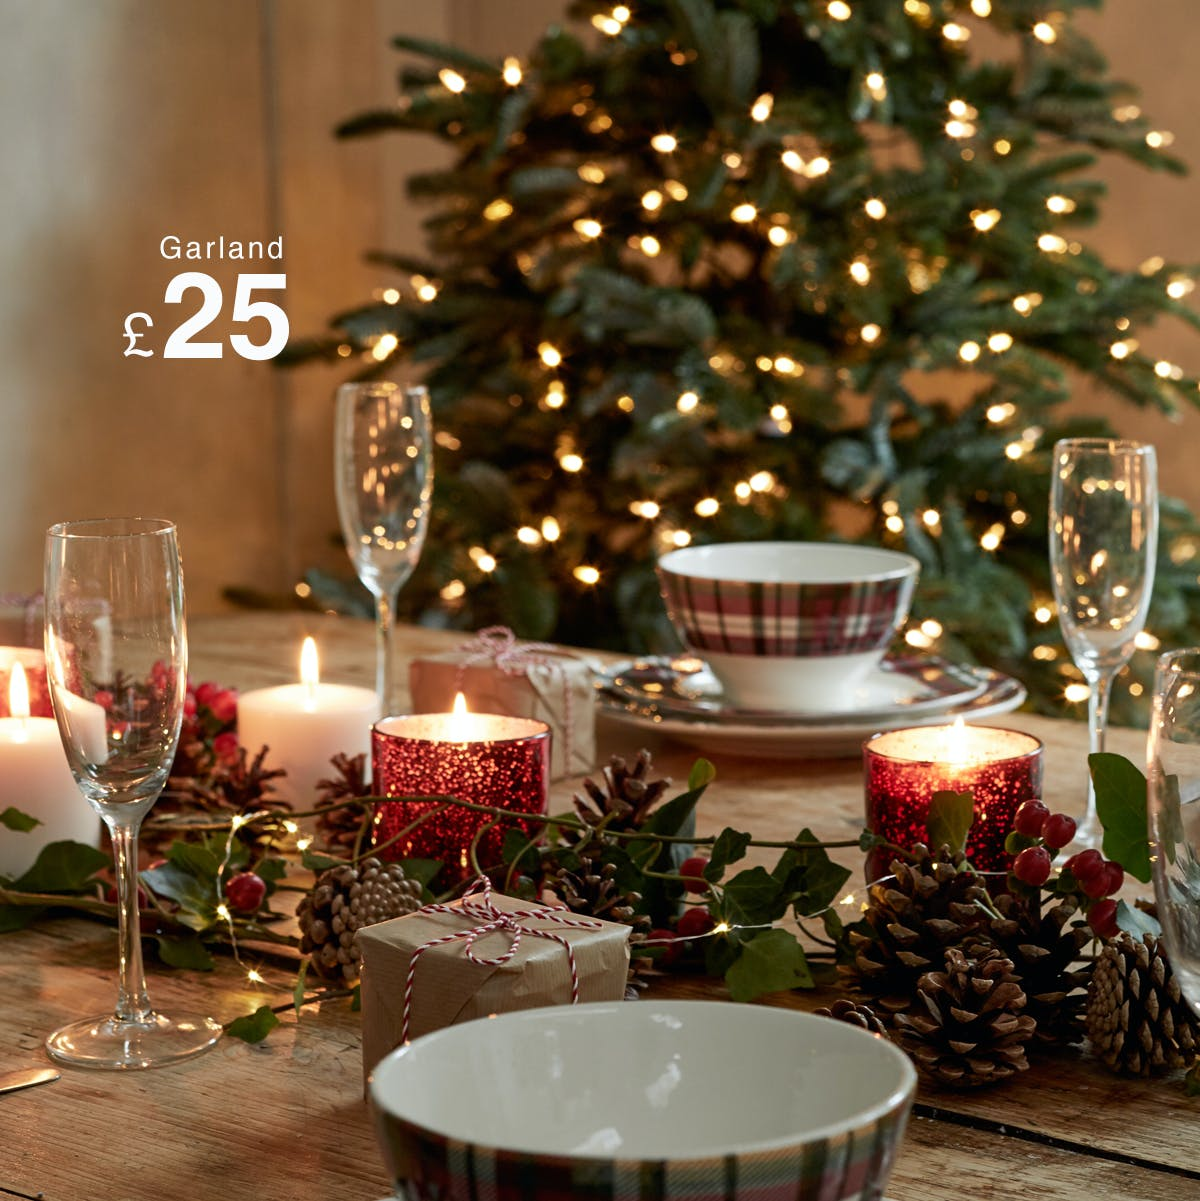 How To Perfect Your Christmas Table Decorations  CnNzLTAtNUIyZmRh: How To Set The Perfect Christmas Dining Table